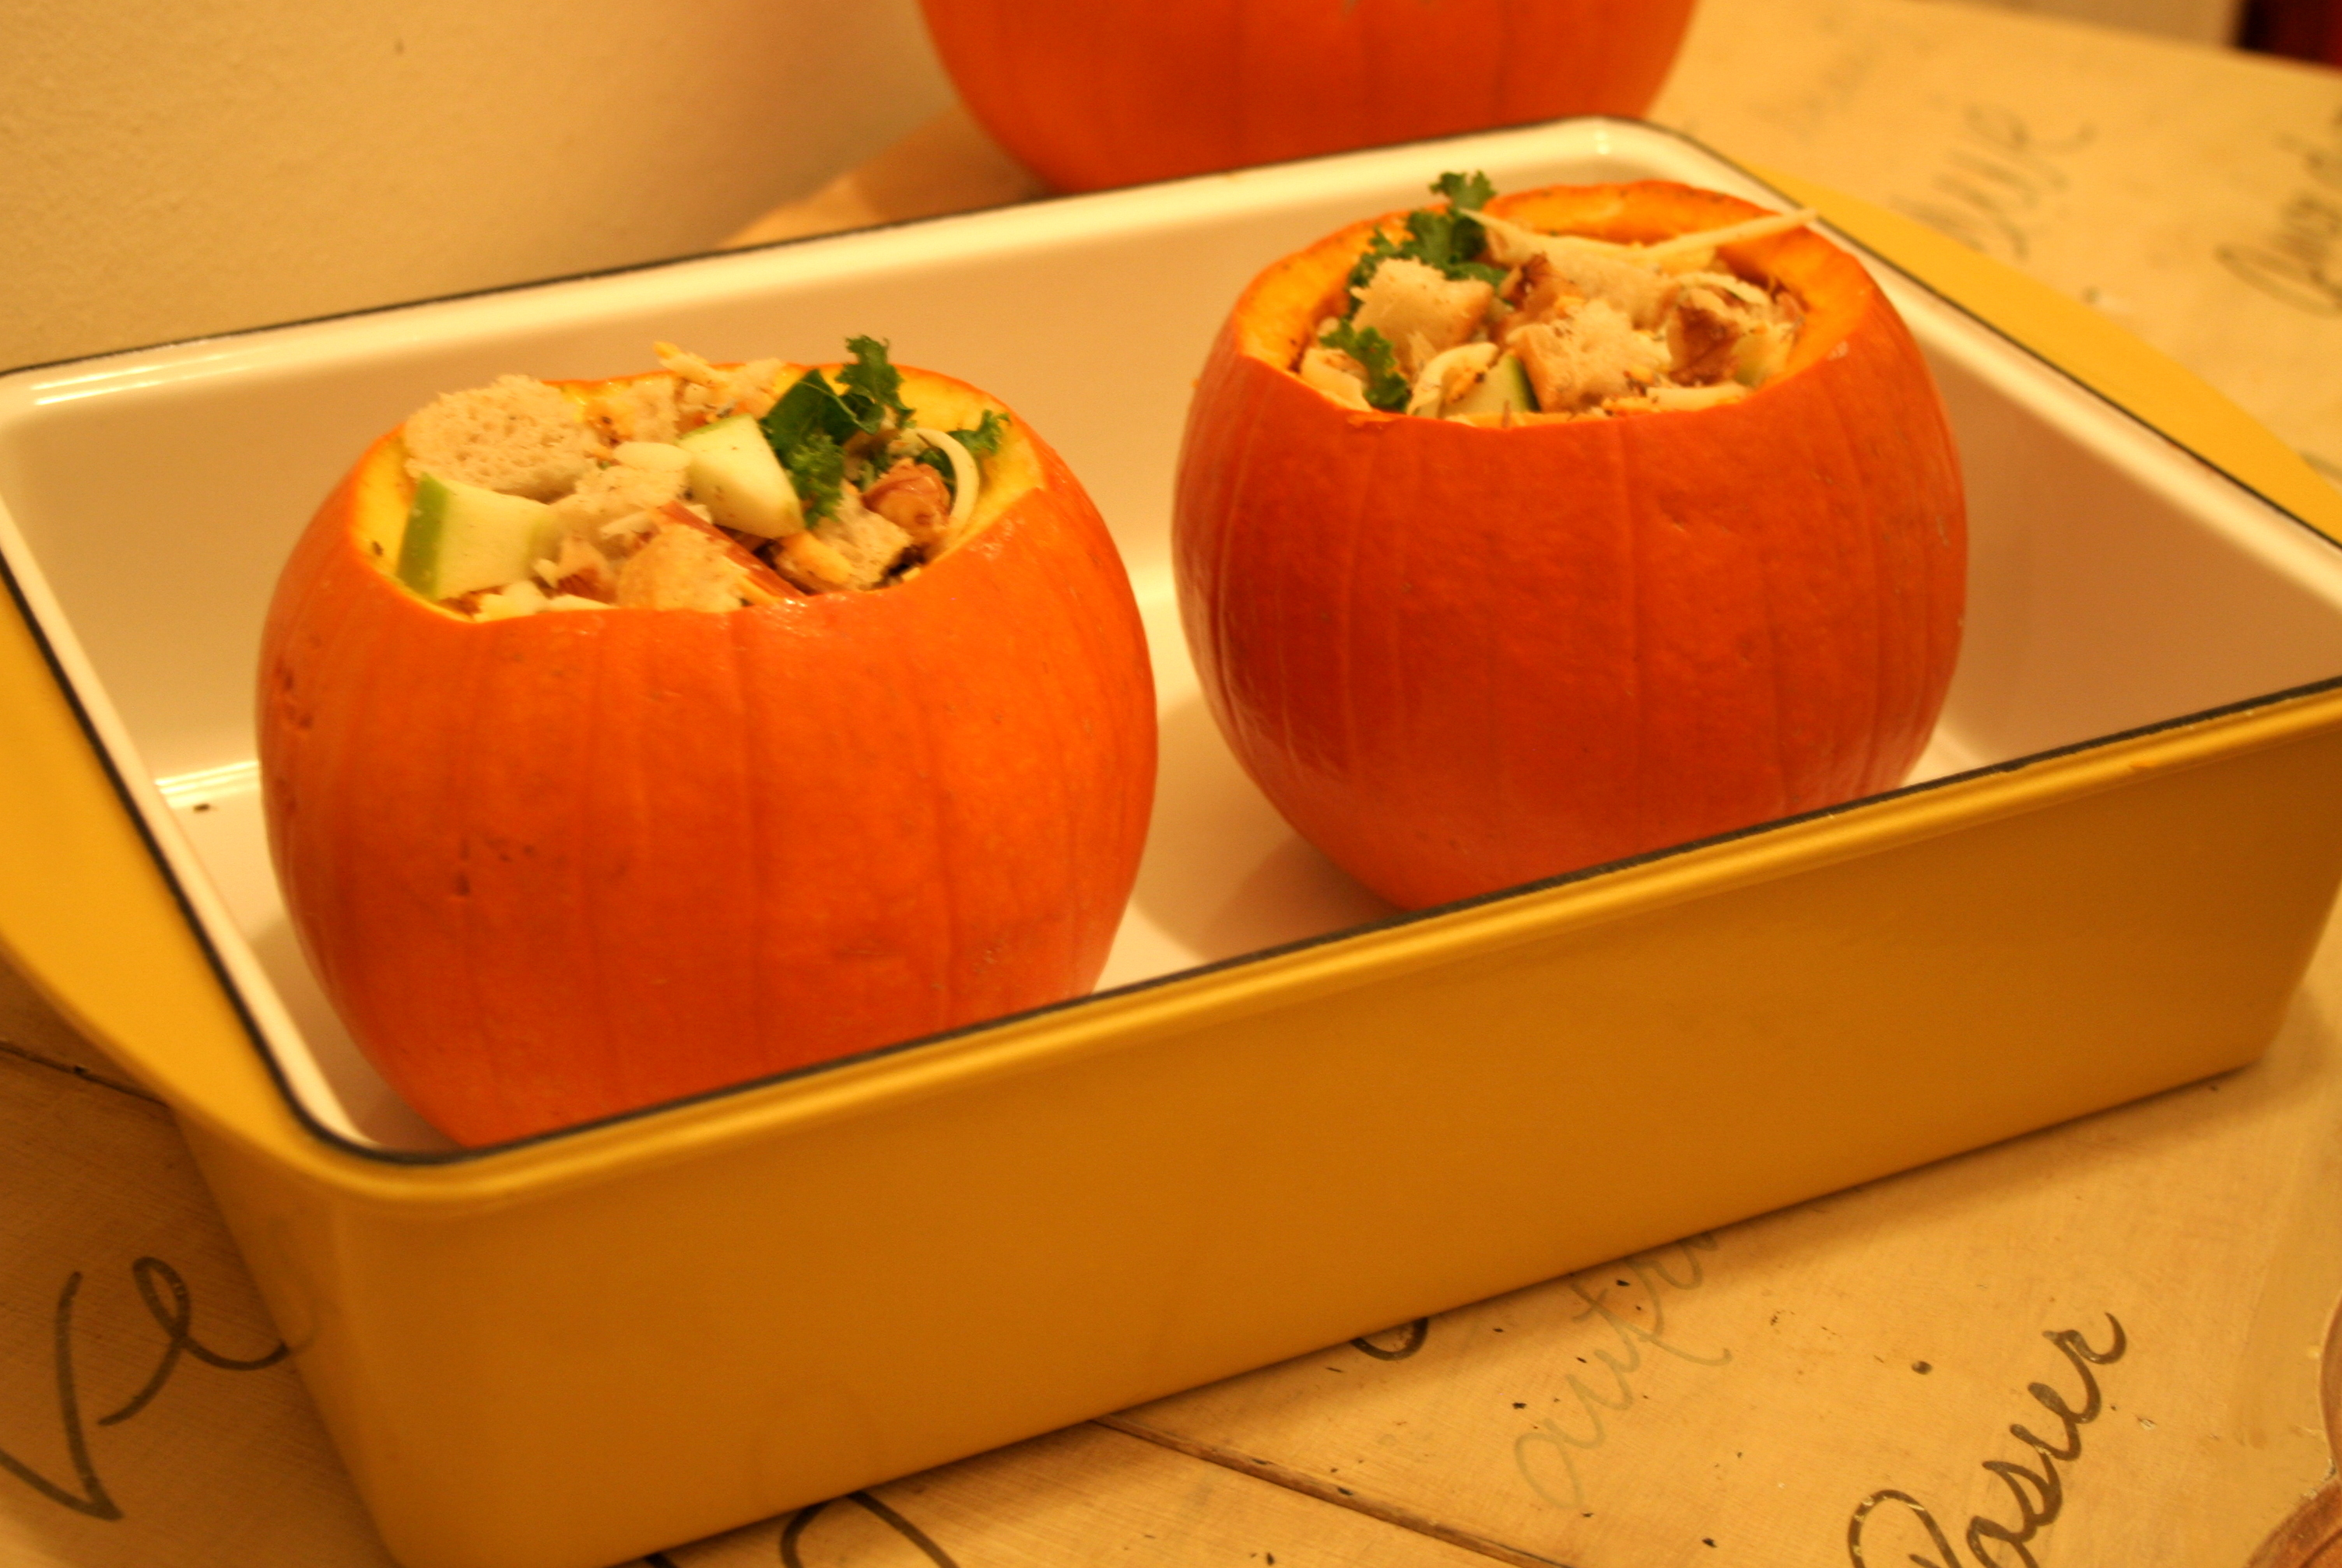 Unbaked Pumpkins in Dish